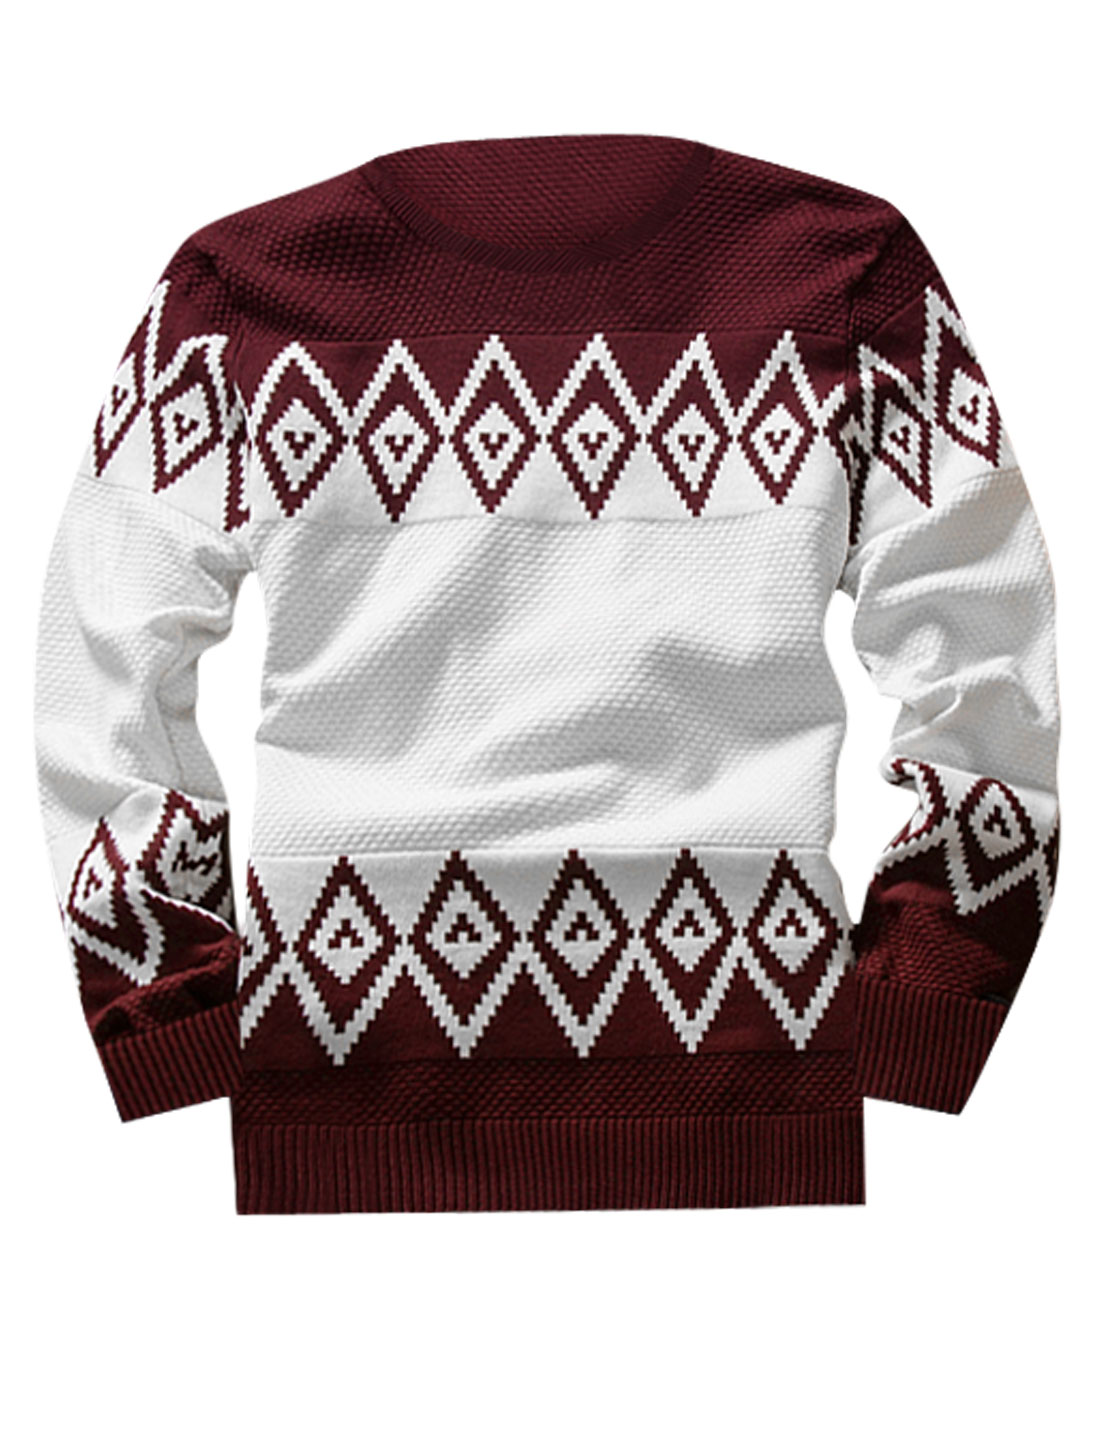 Man Crew Neck Argyle Prints Pullover Knitted Shirts Burgundy White M